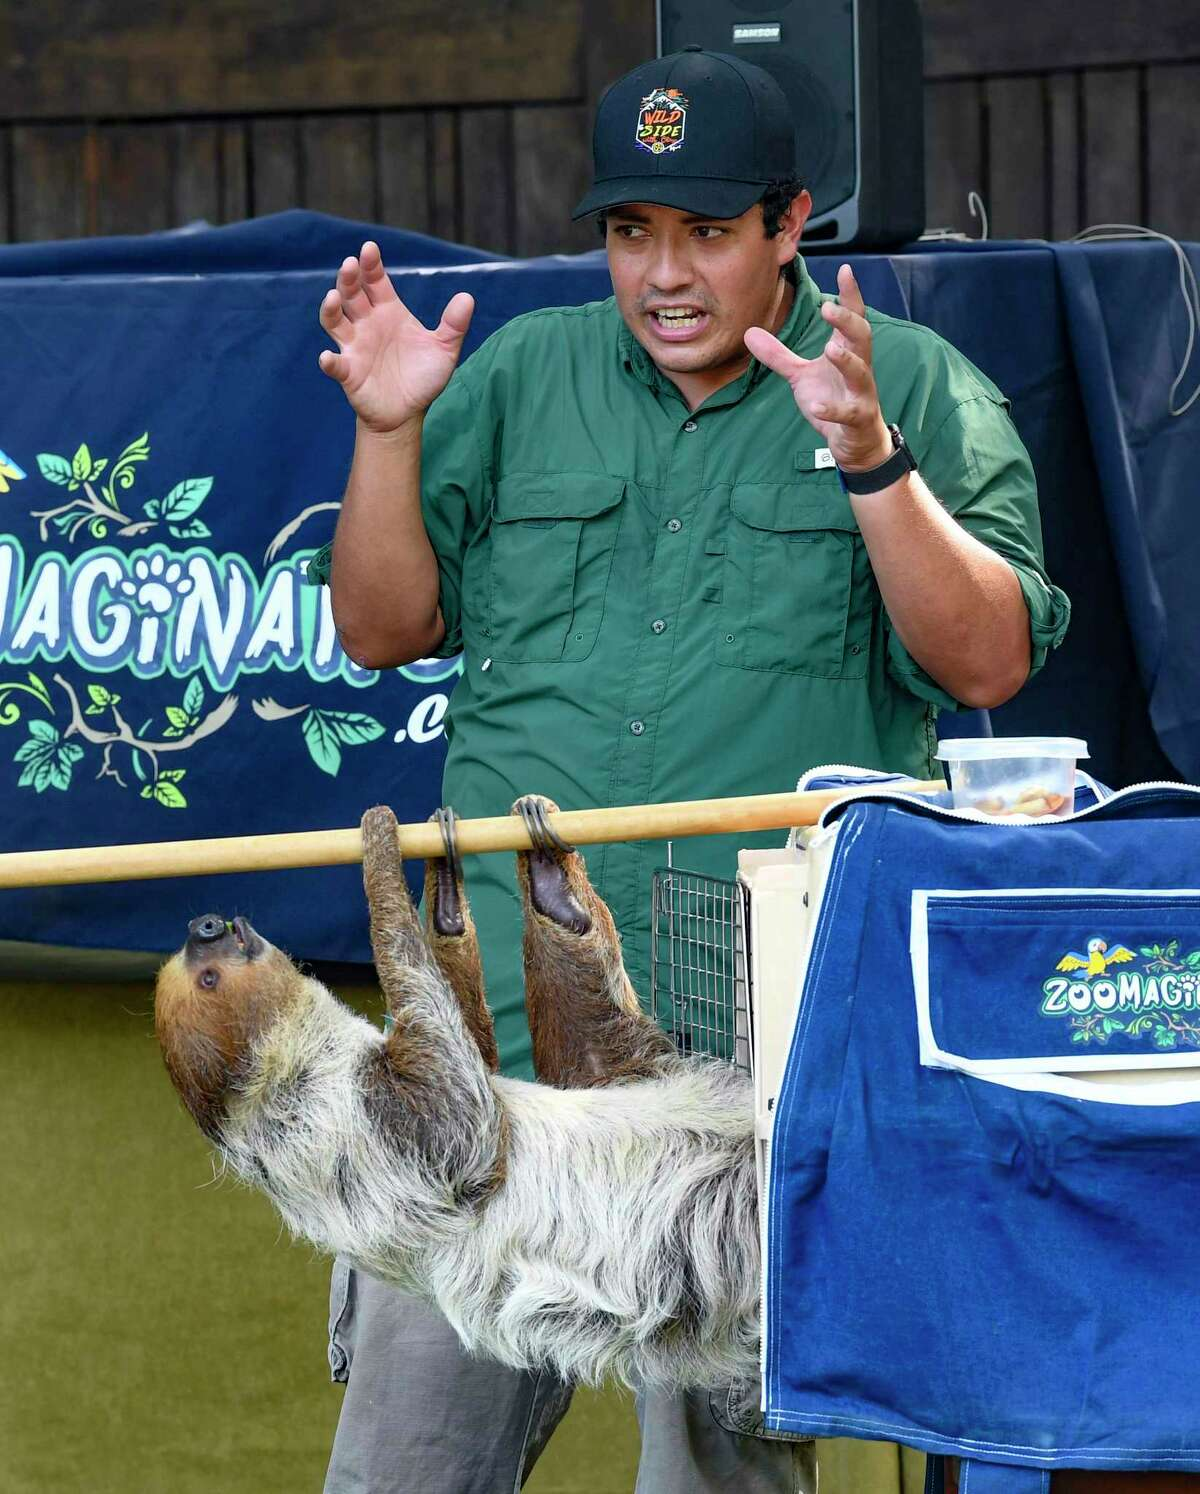 Clay Carabajal explains the behavior of sloths during a show at the Hyatt Hill Country Golf Club on Wednesday, June 9, 2021.